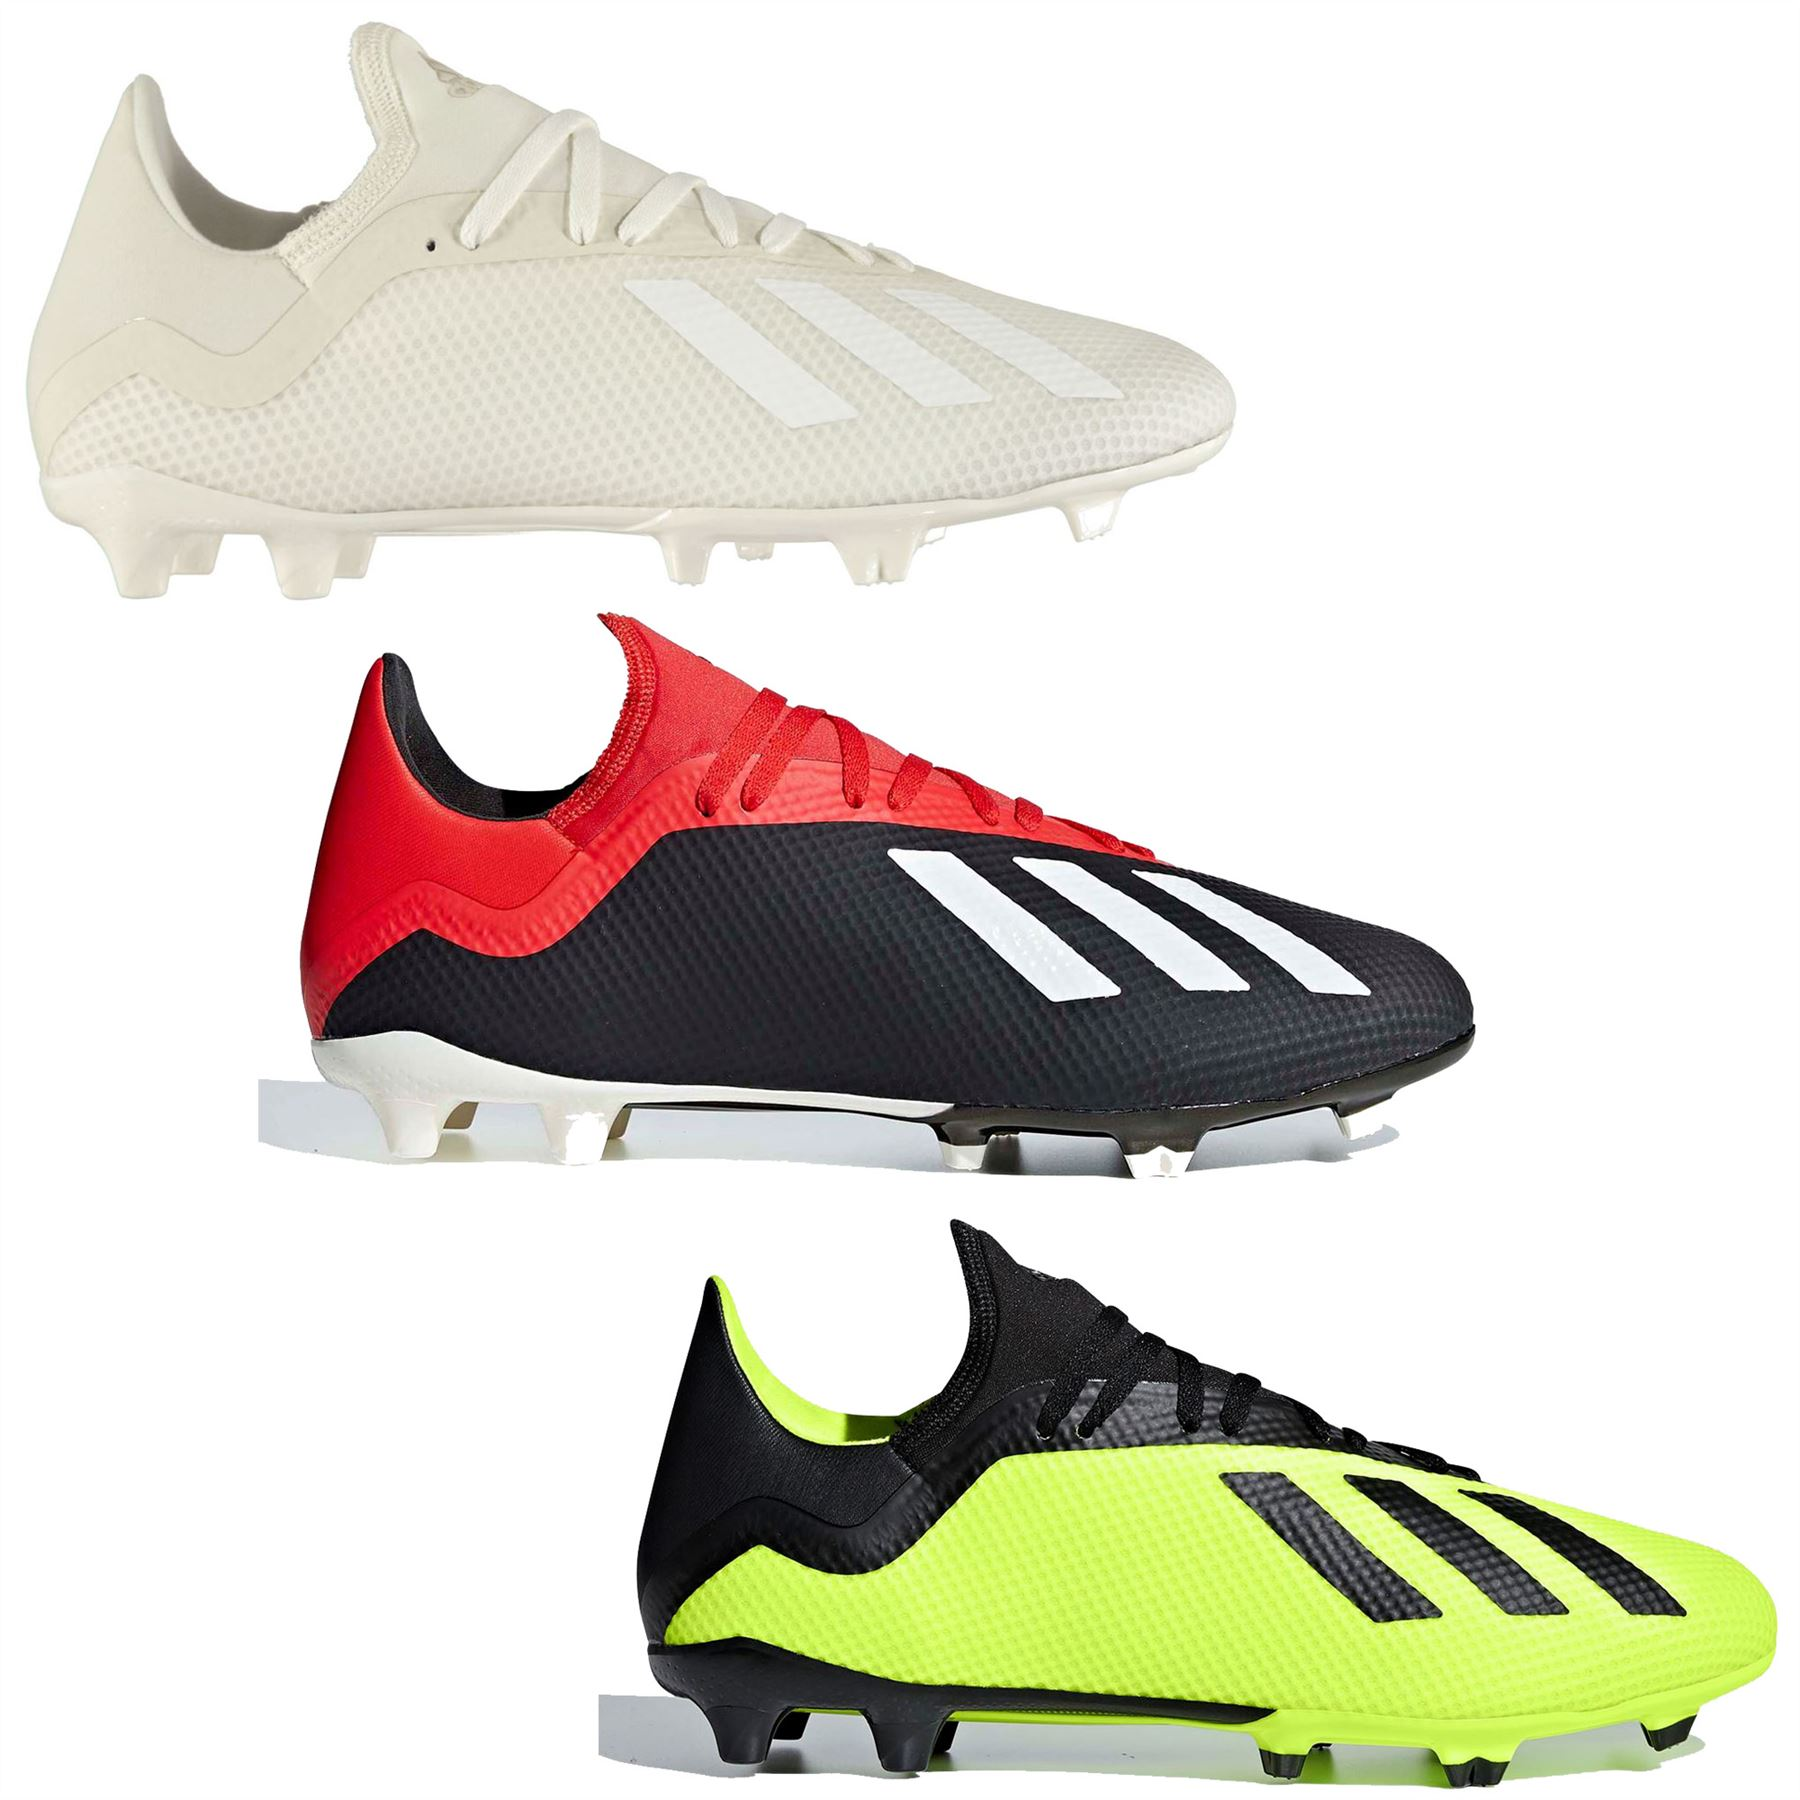 new style 82de0 3b6dc Details about adidas X 18.3 FG Firm Ground Football Boots Mens Soccer Shoes  Cleats